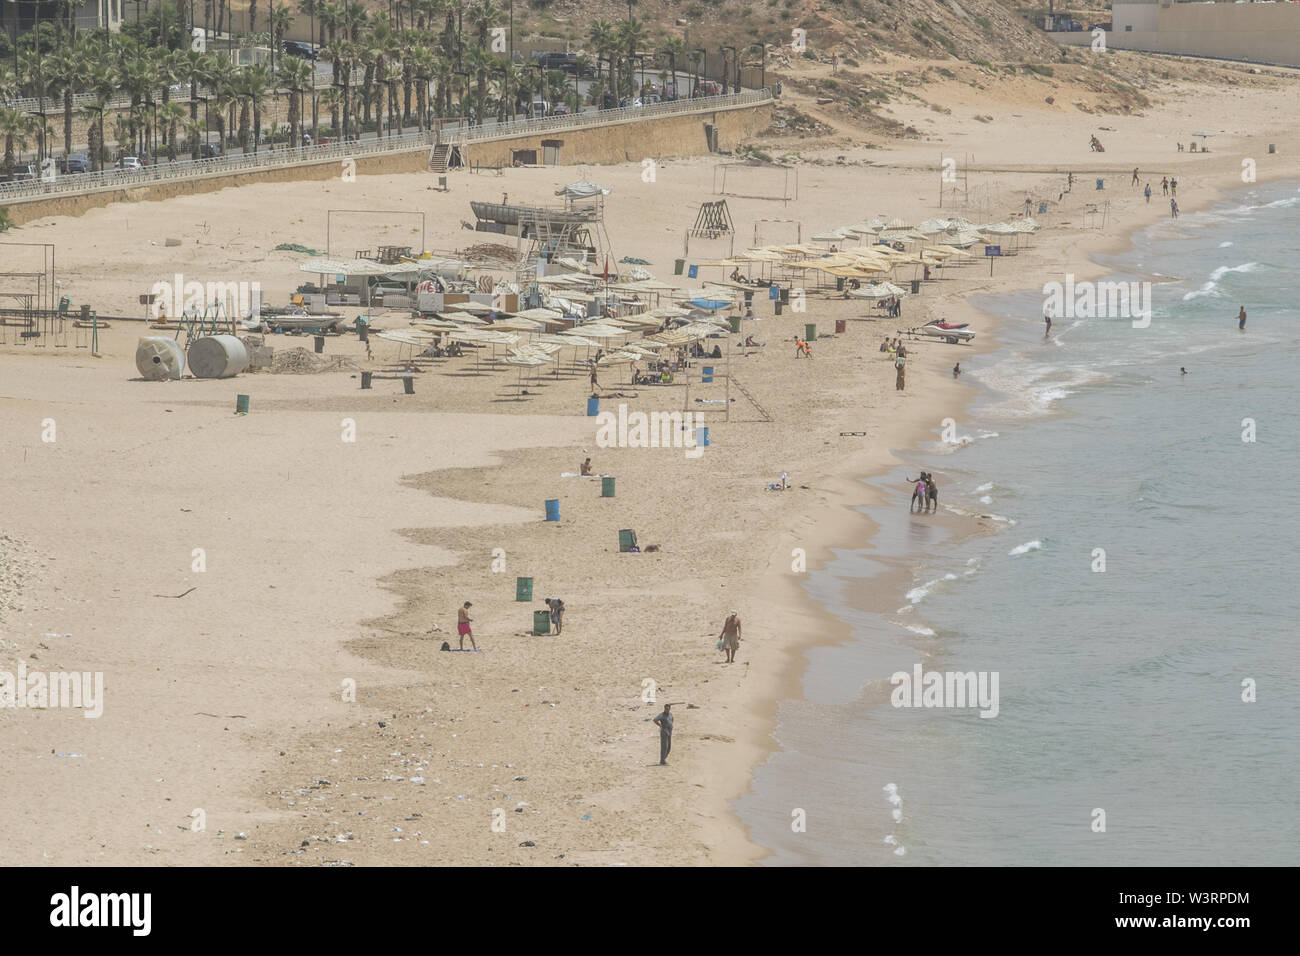 Beirut, Lebanon. 17th July, 2019. People cool off at the beach in Beirut during a sweltering day as temperatures exceed 40 degrees Celsius. Credit: Amer Ghazzal/SOPA Images/ZUMA Wire/Alamy Live News - Stock Image